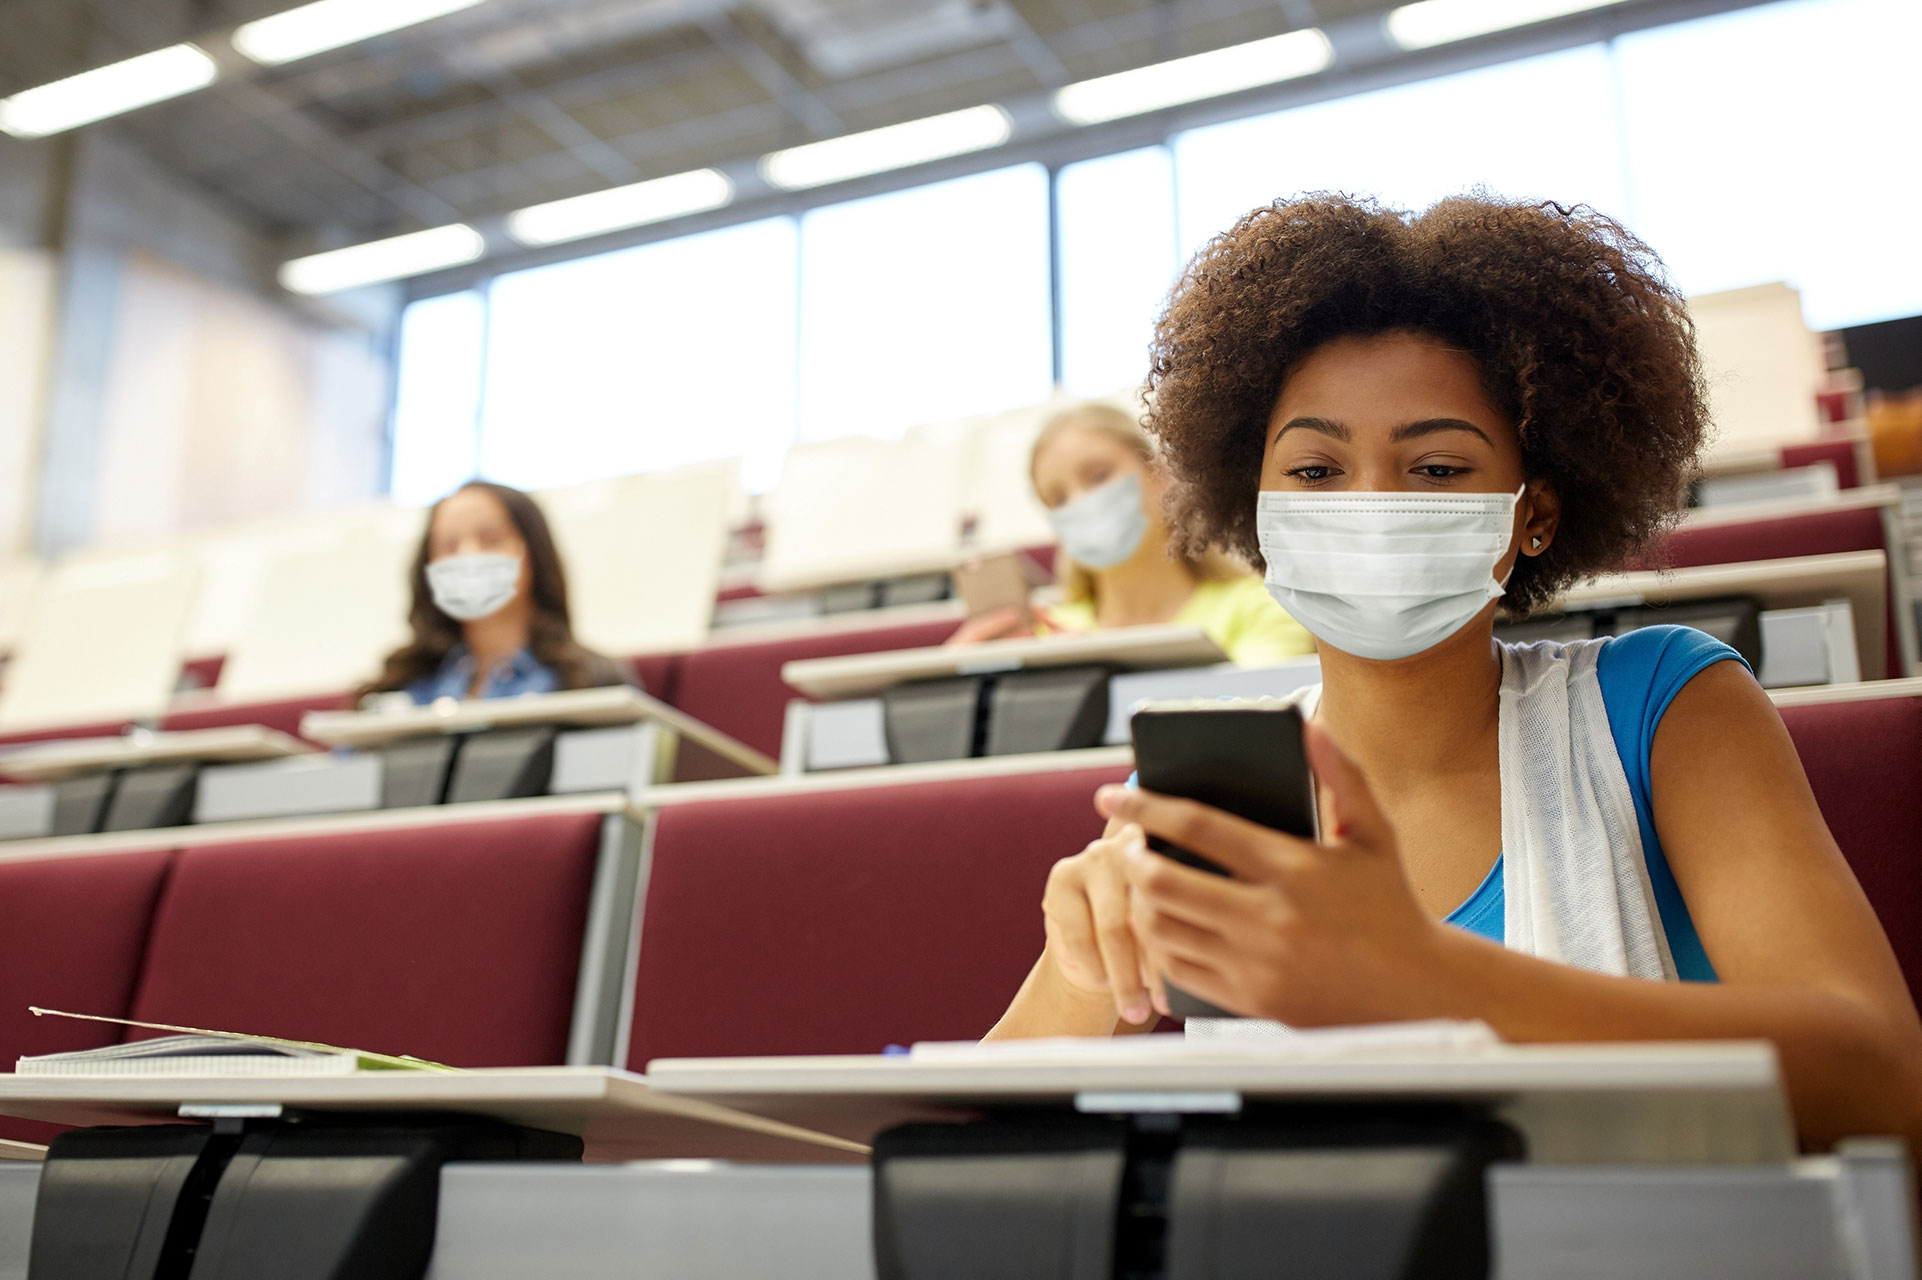 Black female student on her phone in a classroom